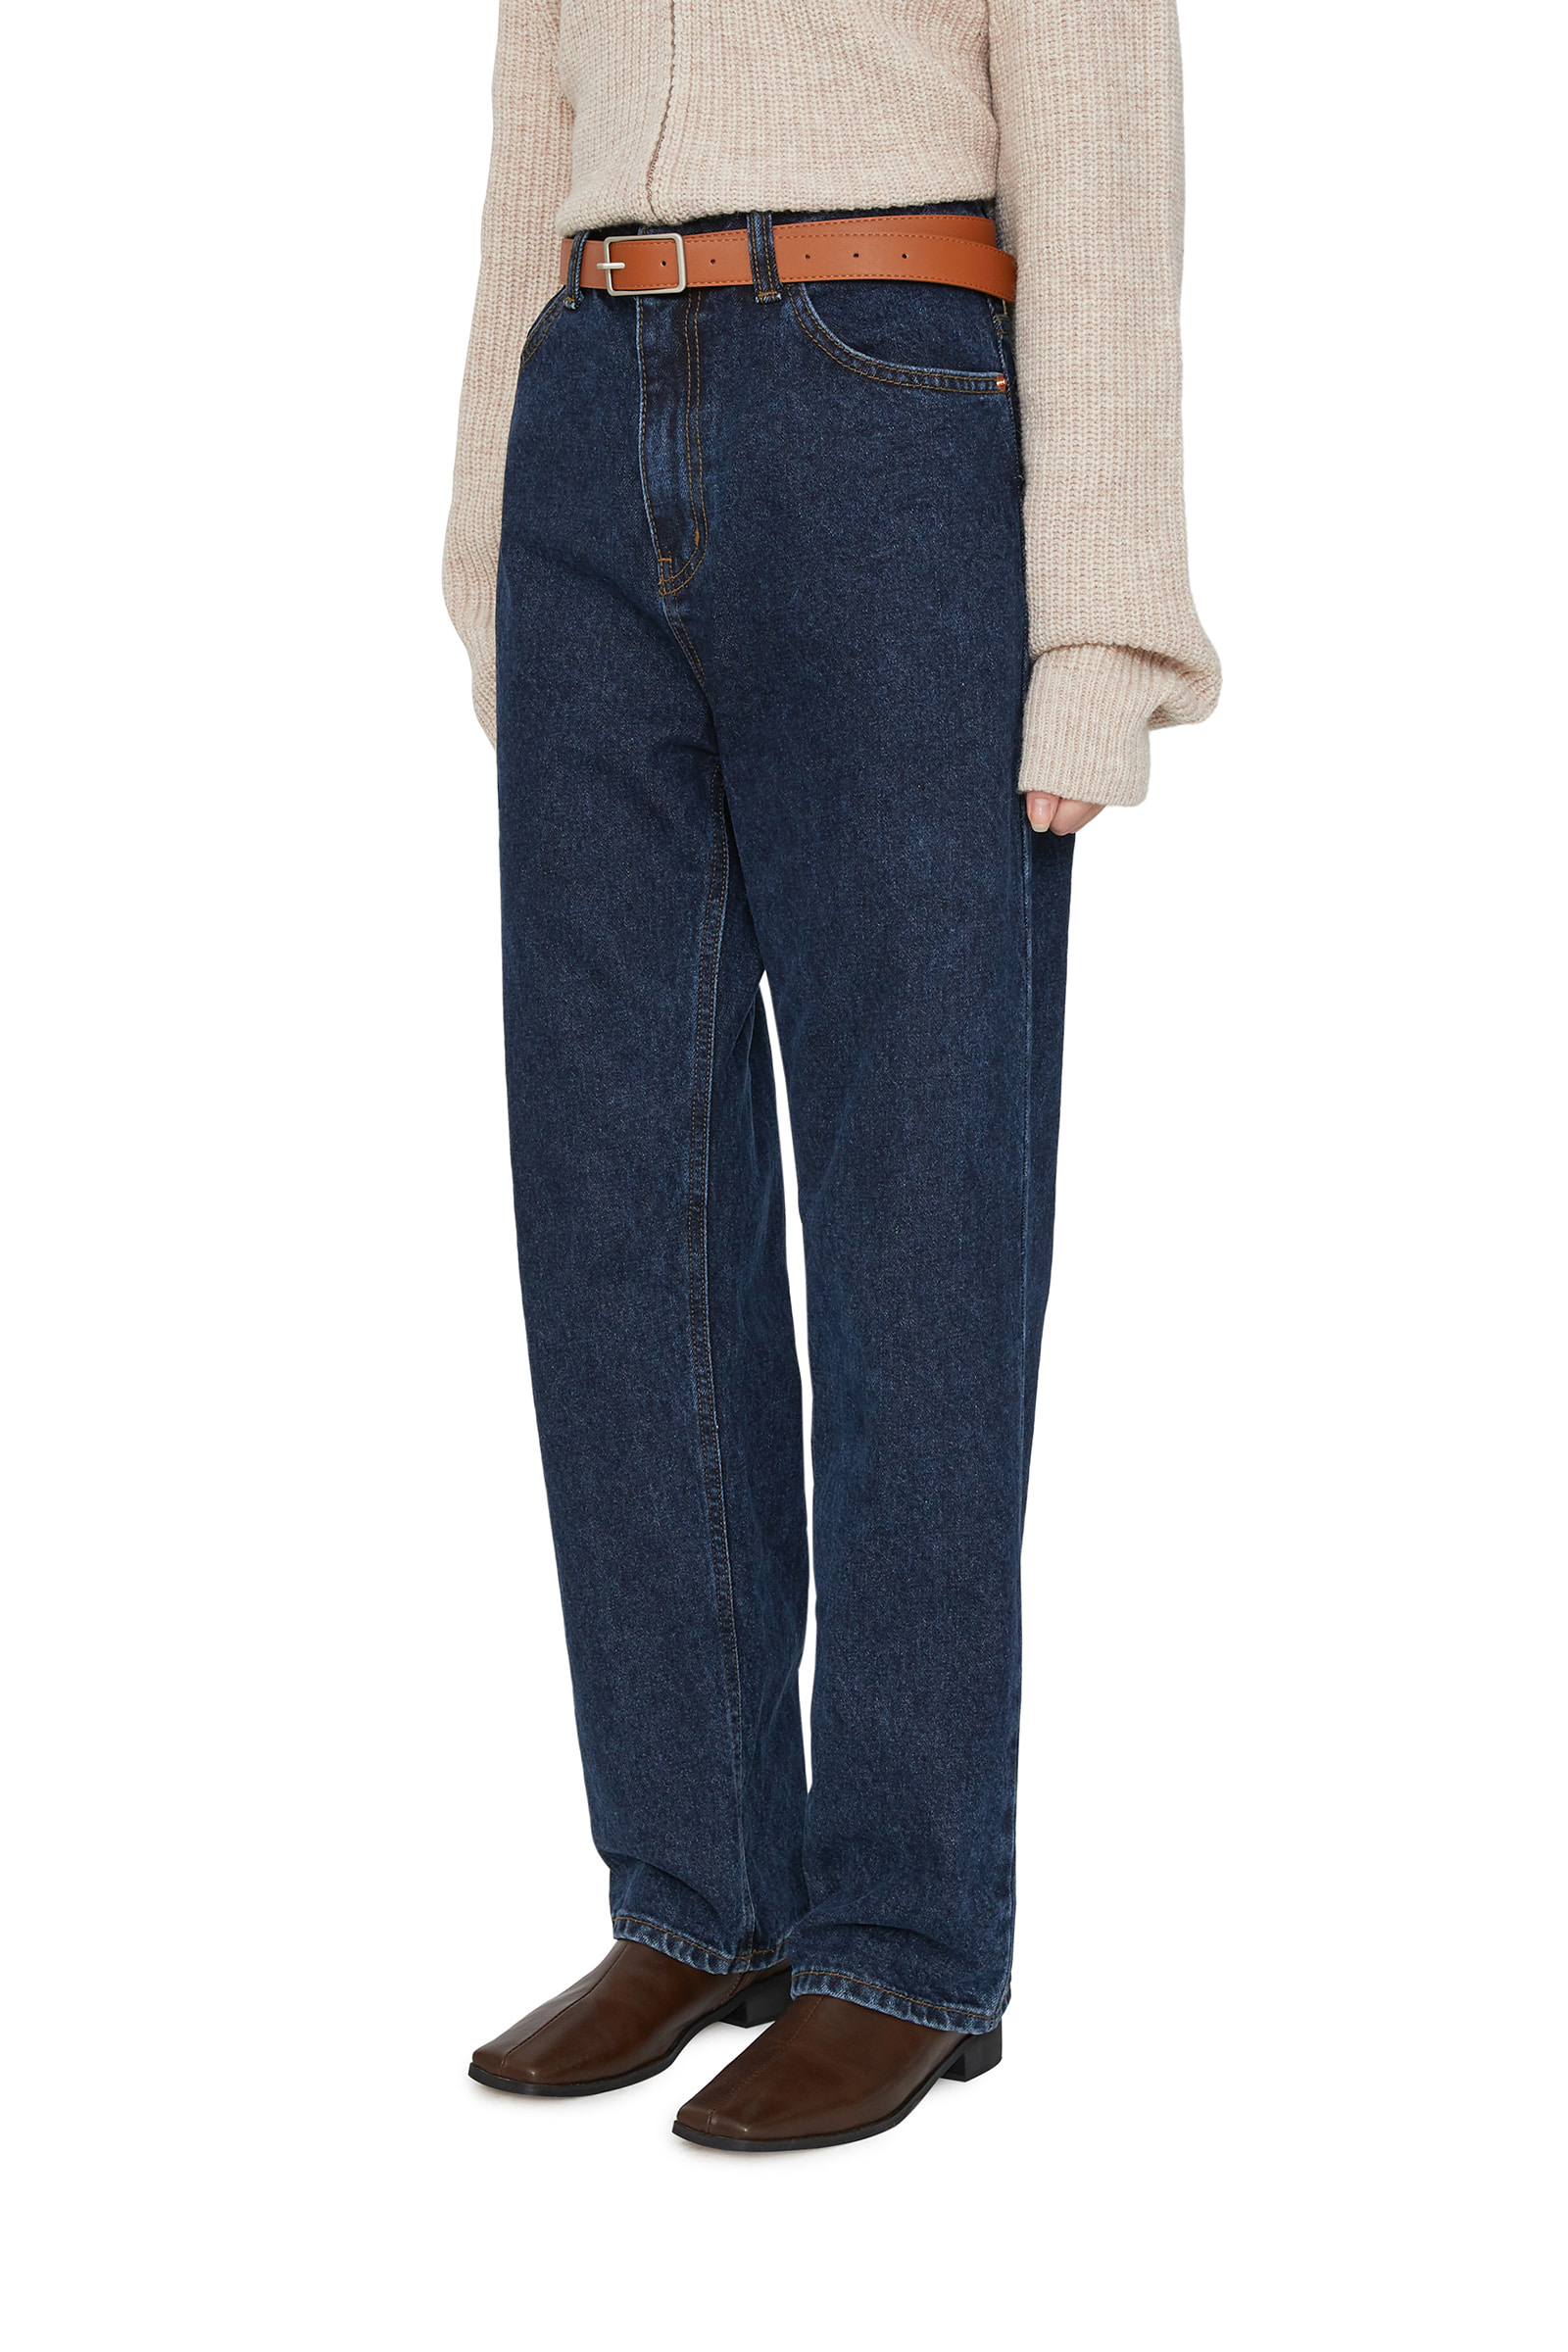 Save Faded straight jeans